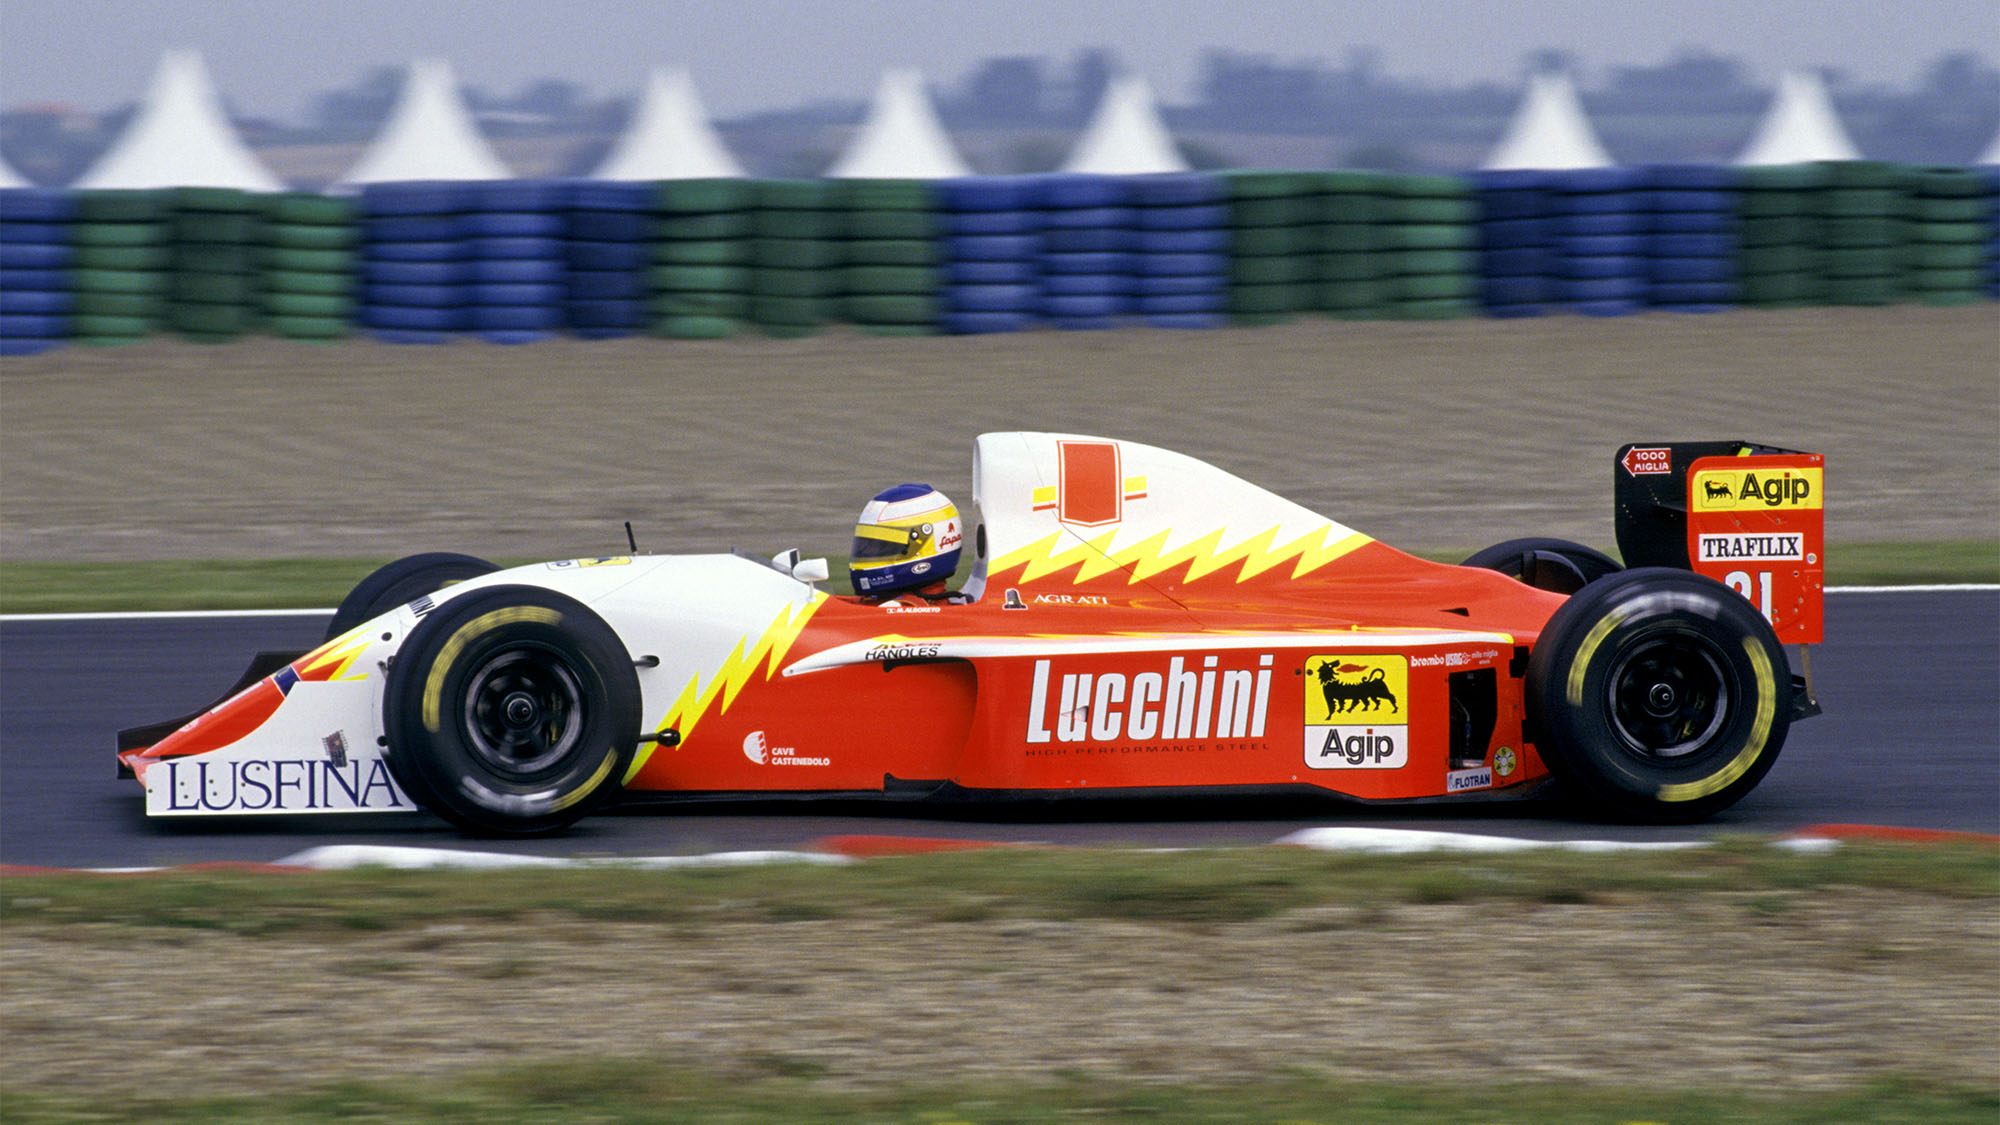 1993 Michele Alboreto driving a Lola T93/30 at Magny-Cours, French GP. (Photo by: GP Library/Universal Images Group via Getty Images)